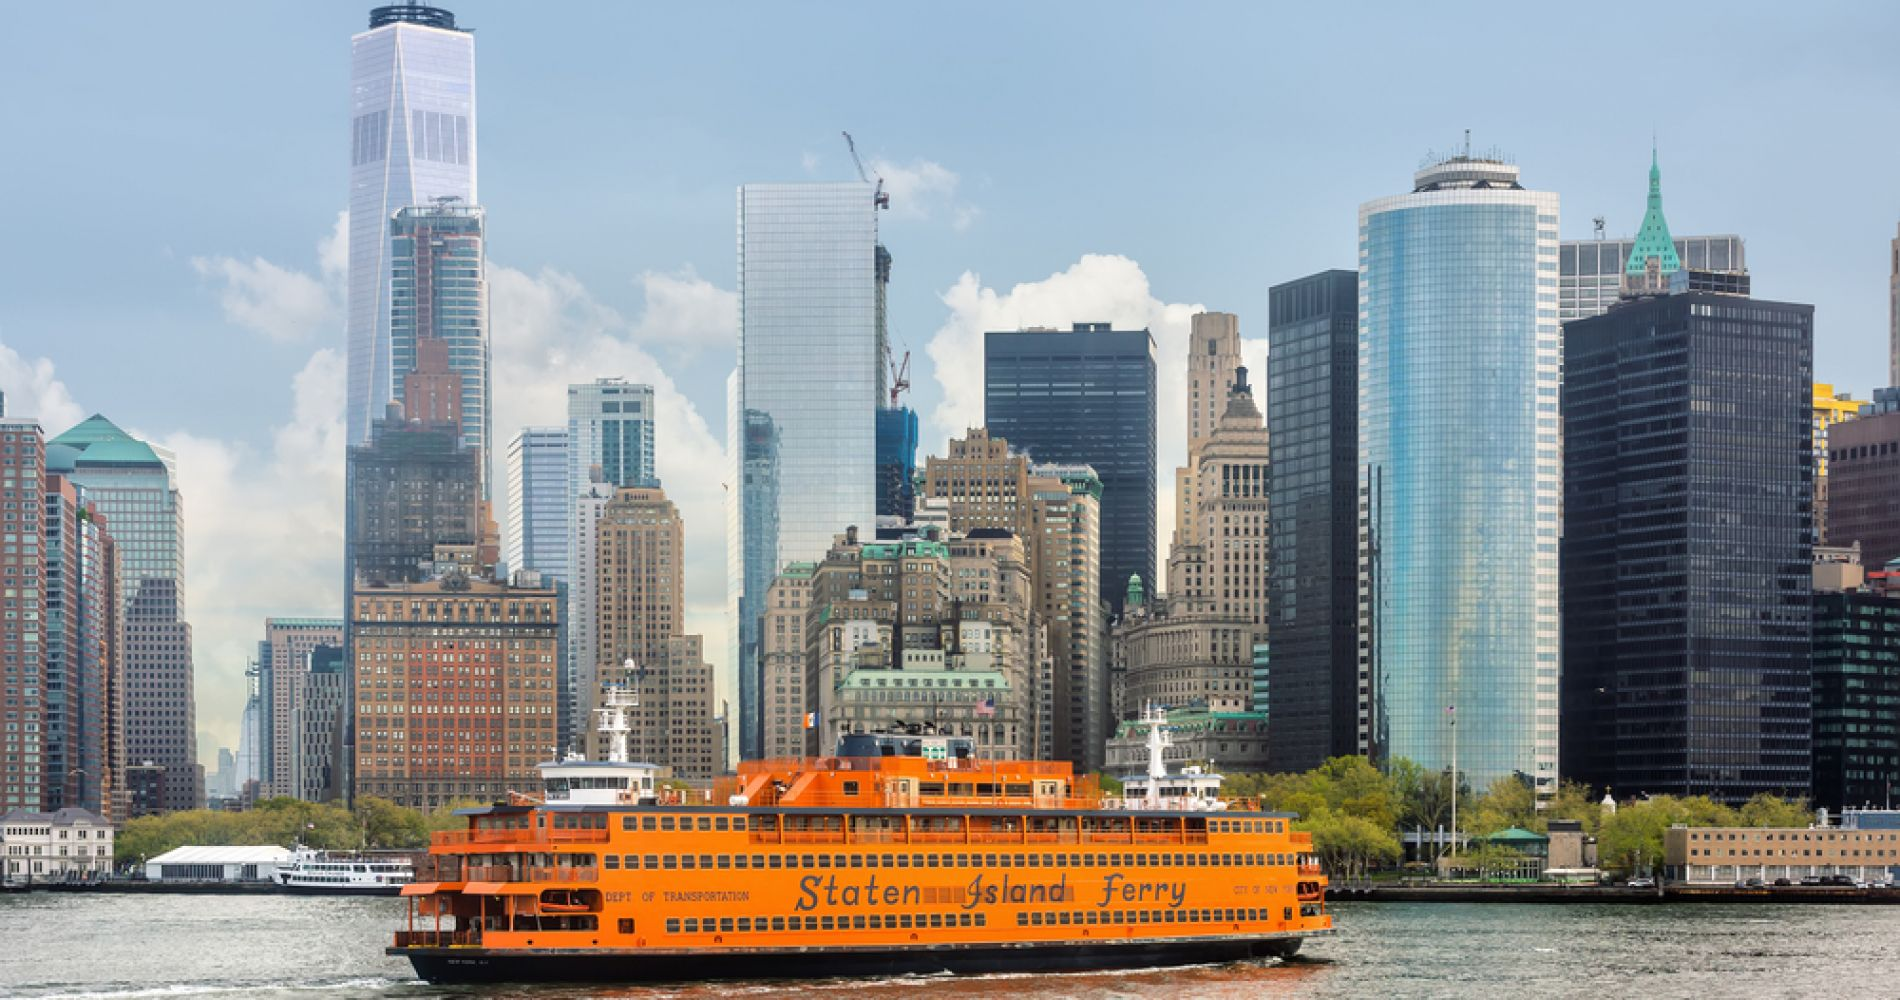 Ride & enjoy the view from the Staten Island Ferry in New York